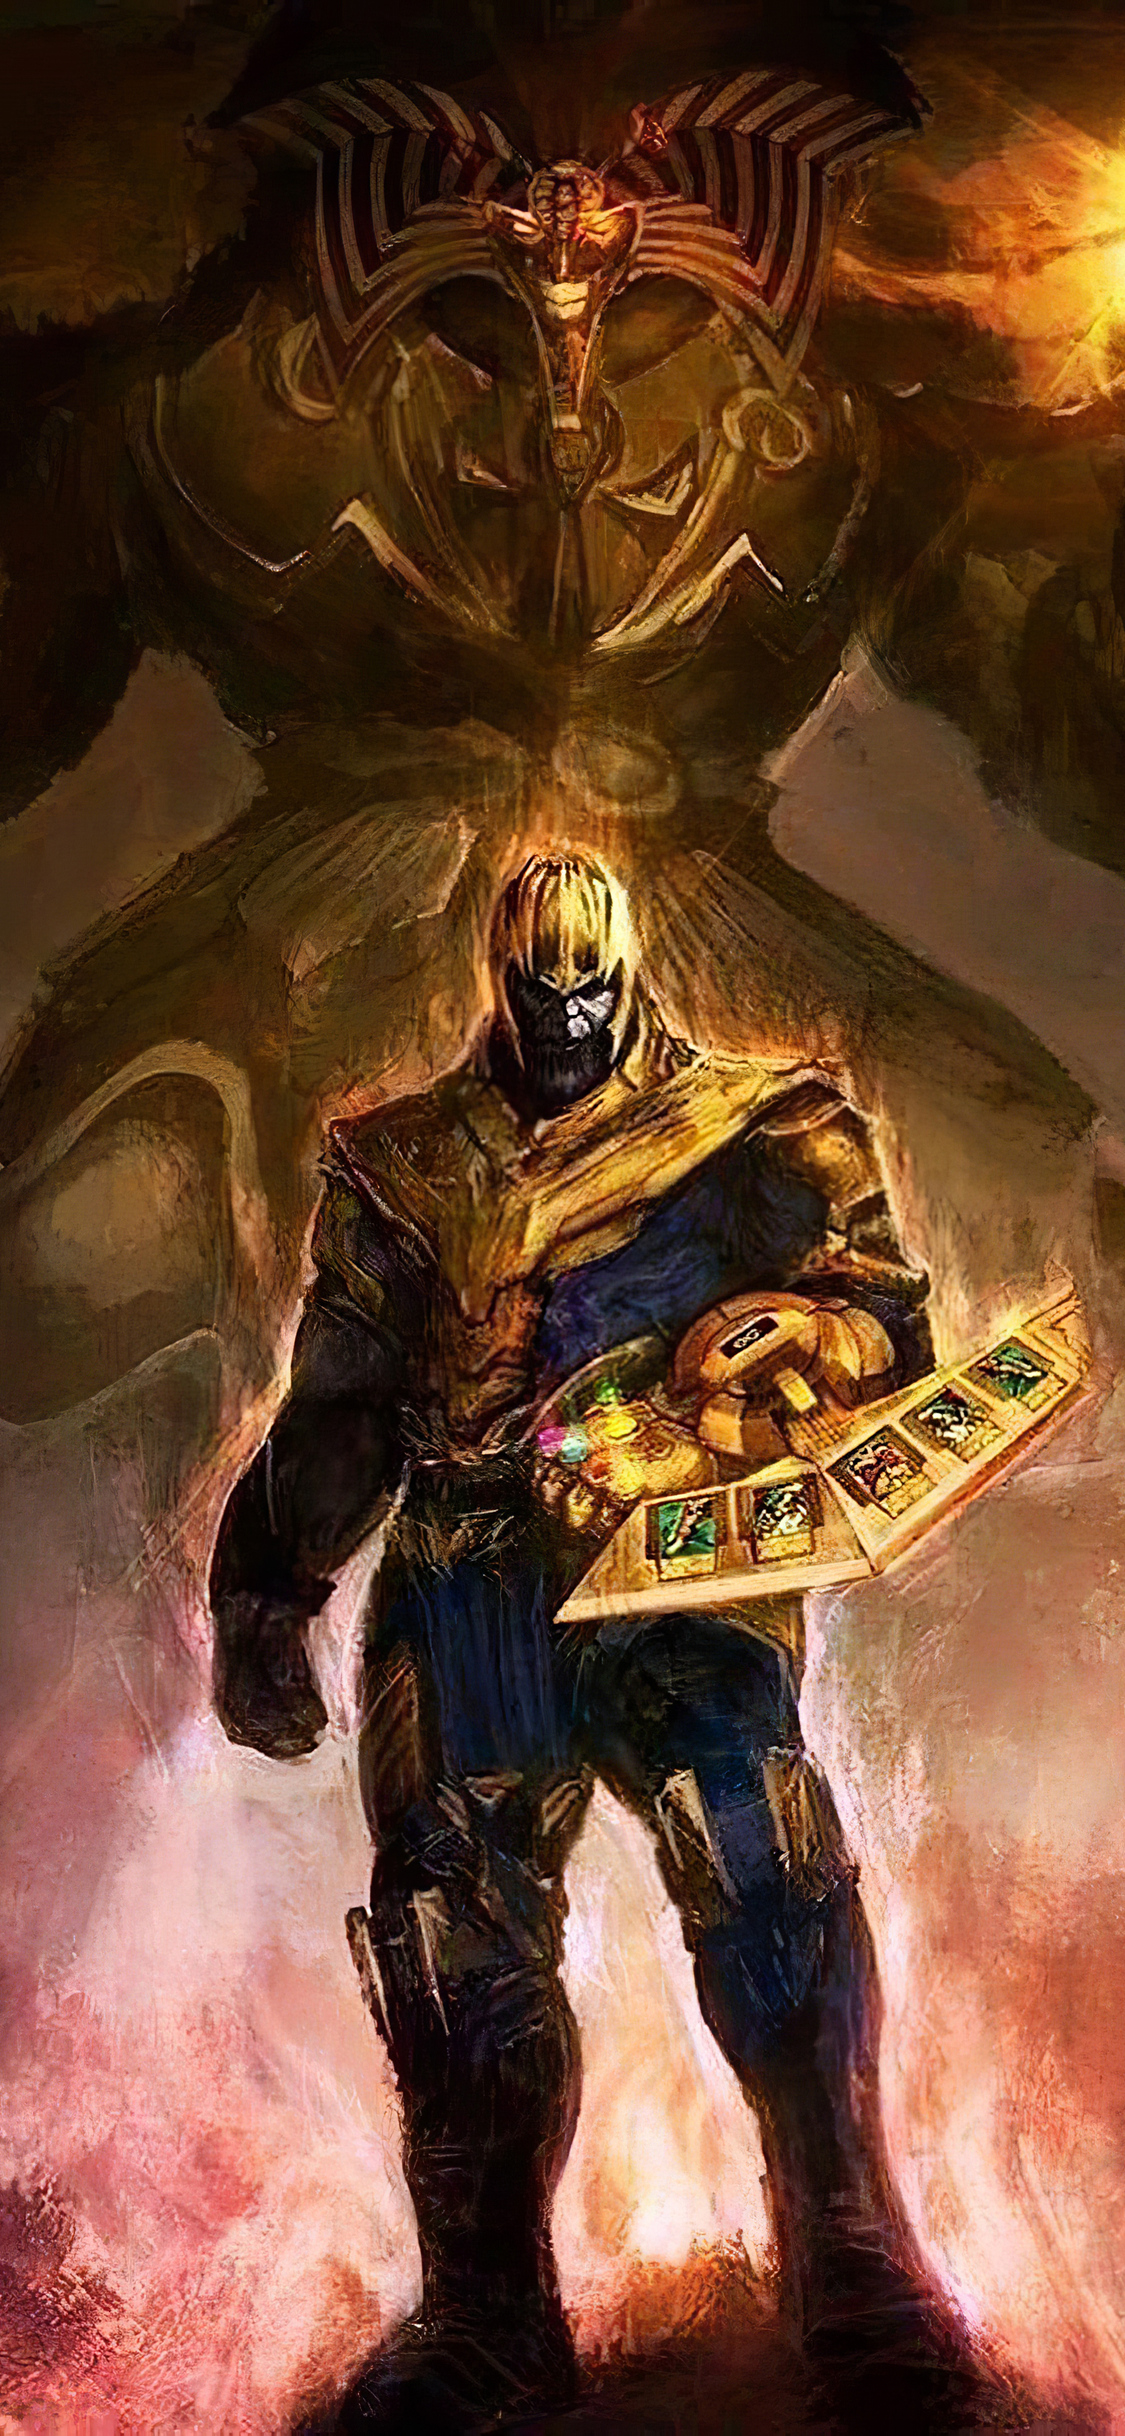 1125x2436 2020 Thanos 4k New Iphone Xs Iphone 10 Iphone X Hd 4k Wallpapers Images Backgrounds Photos And Pictures